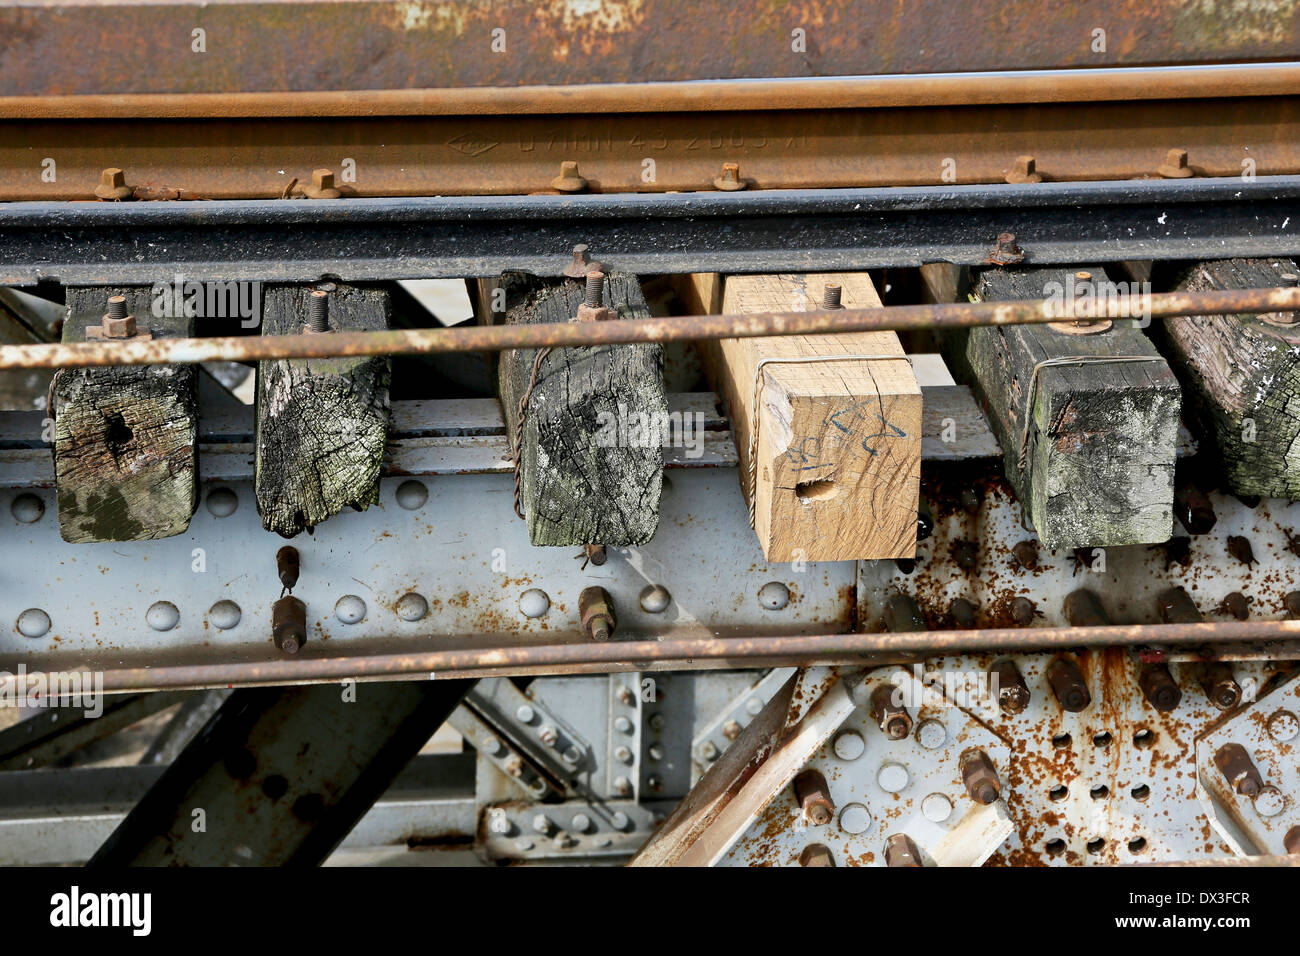 A newly replaced railway sleeper alongside decaying sleepers on the Long Bien Bridge. Hanoi, Vietnam, South East Asia - Stock Image